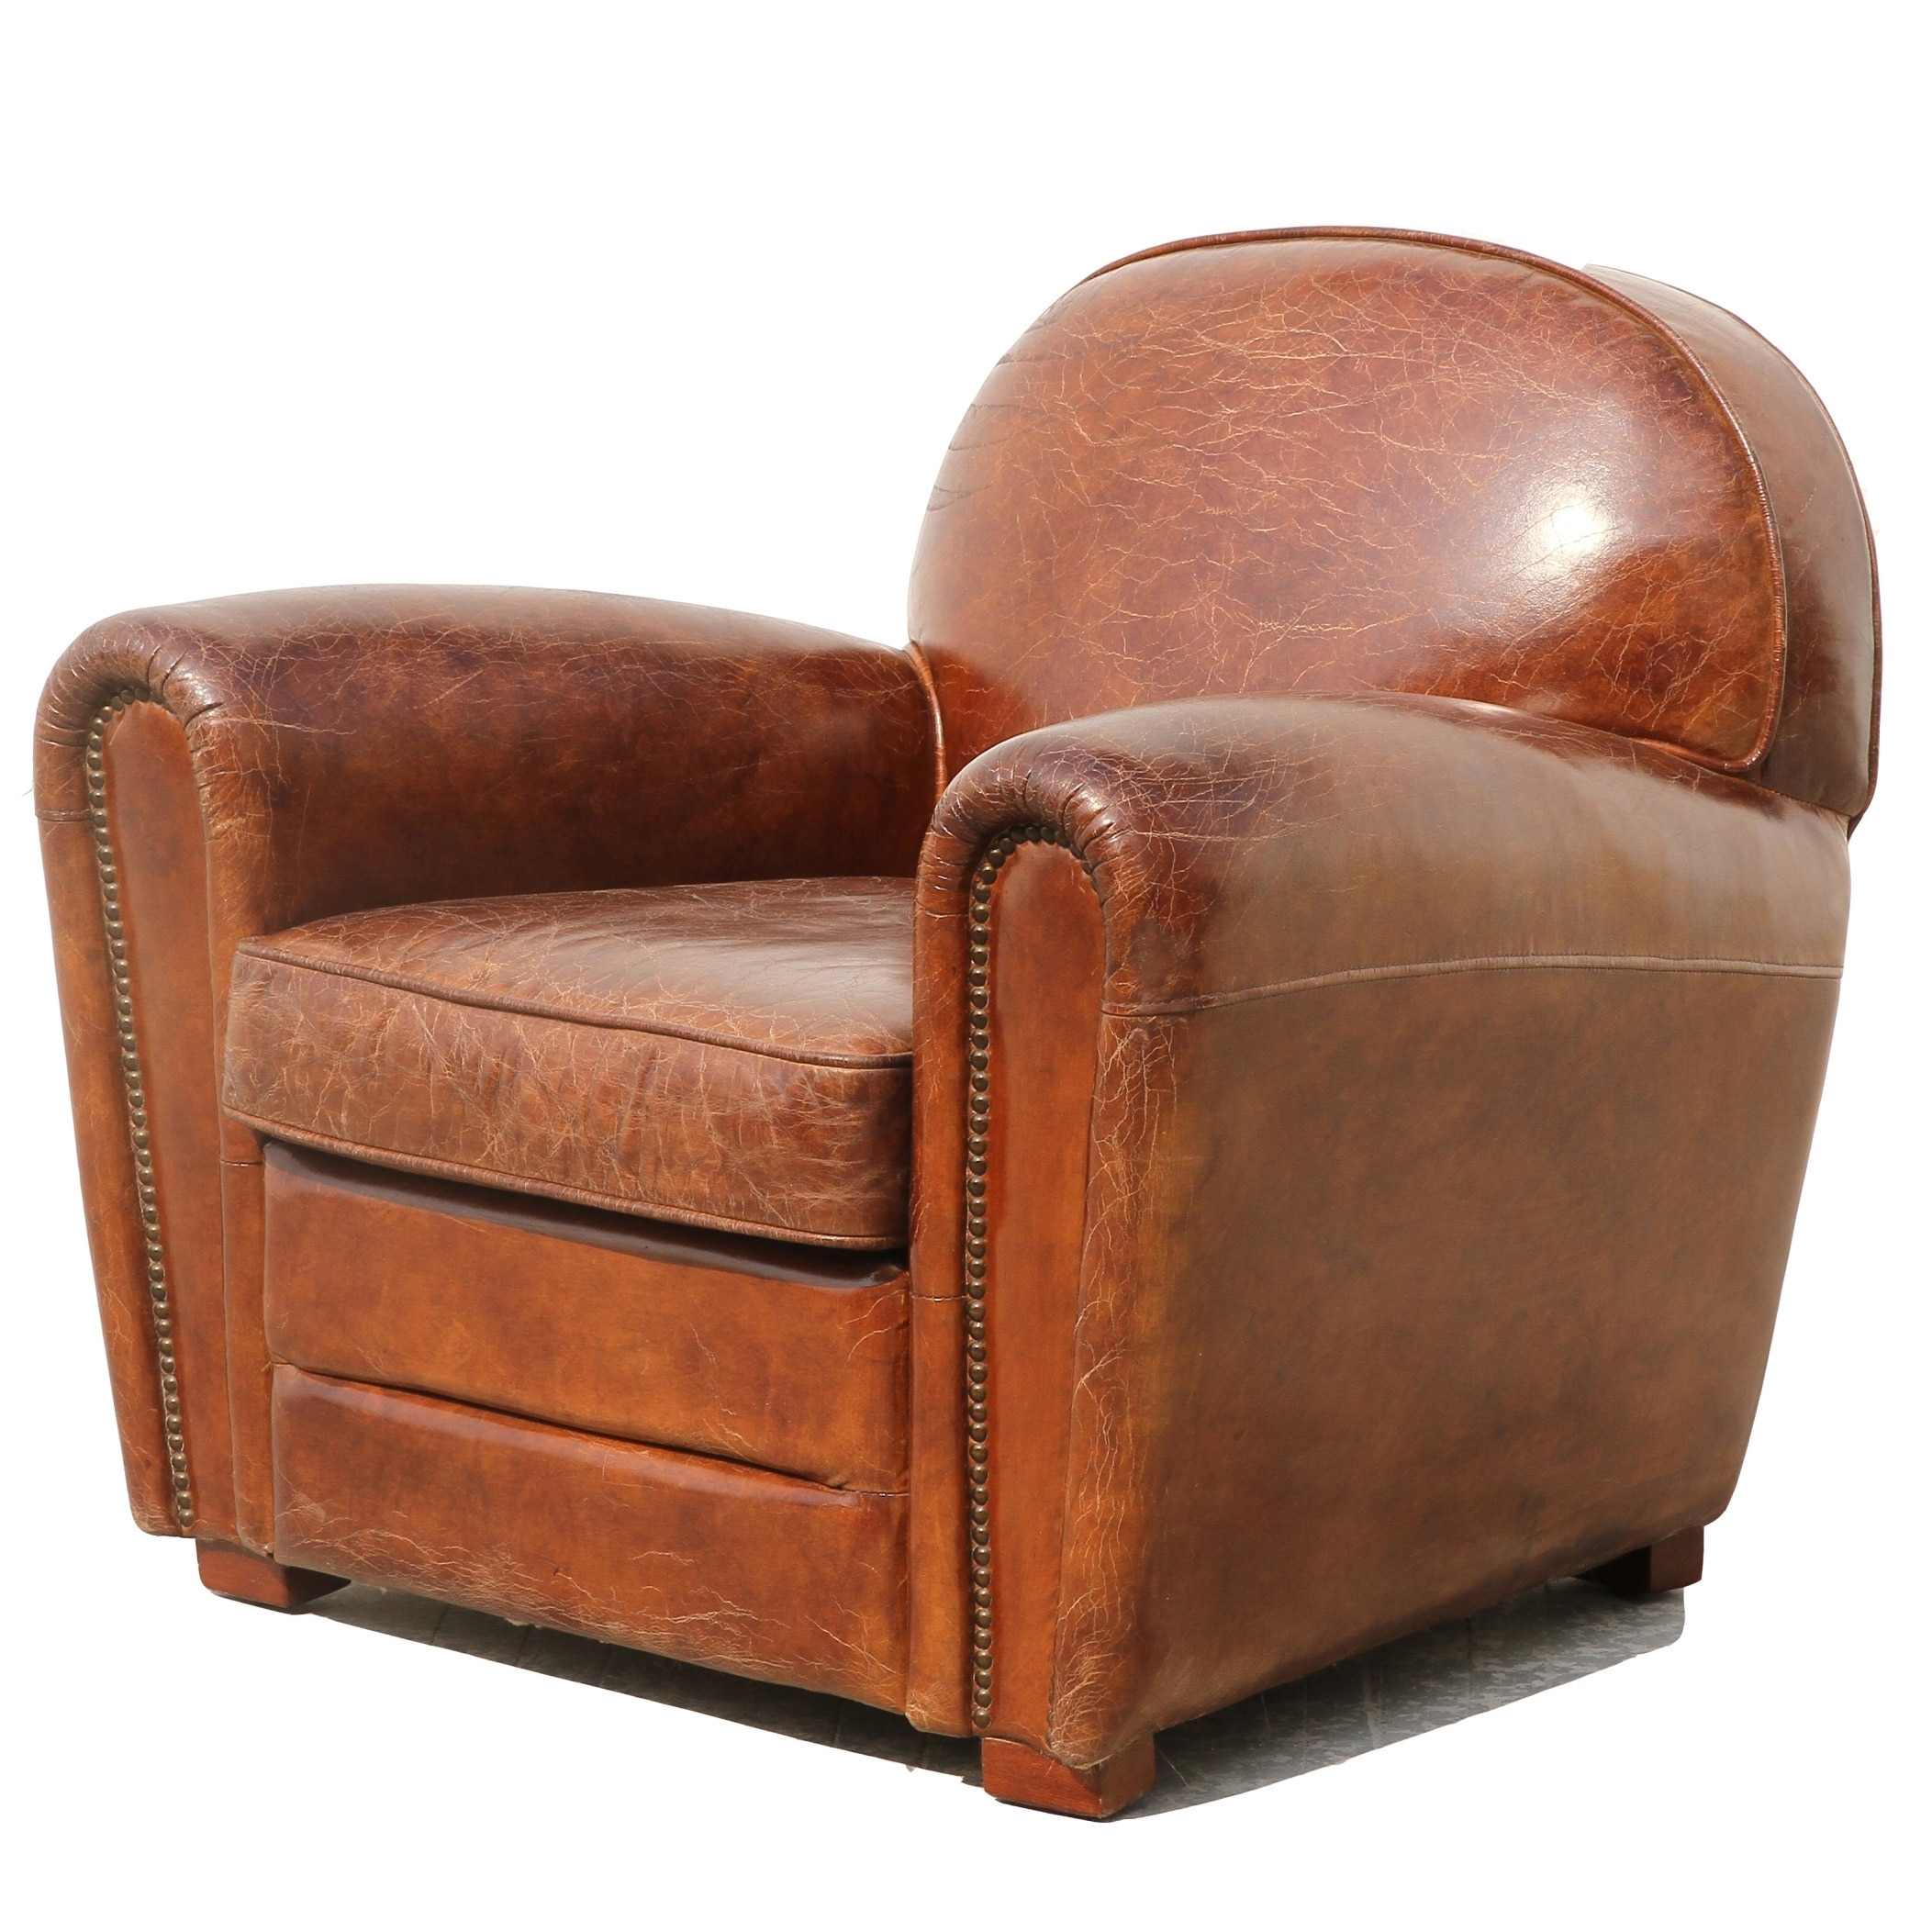 Leather Club Chair Recliners Rona Mantar